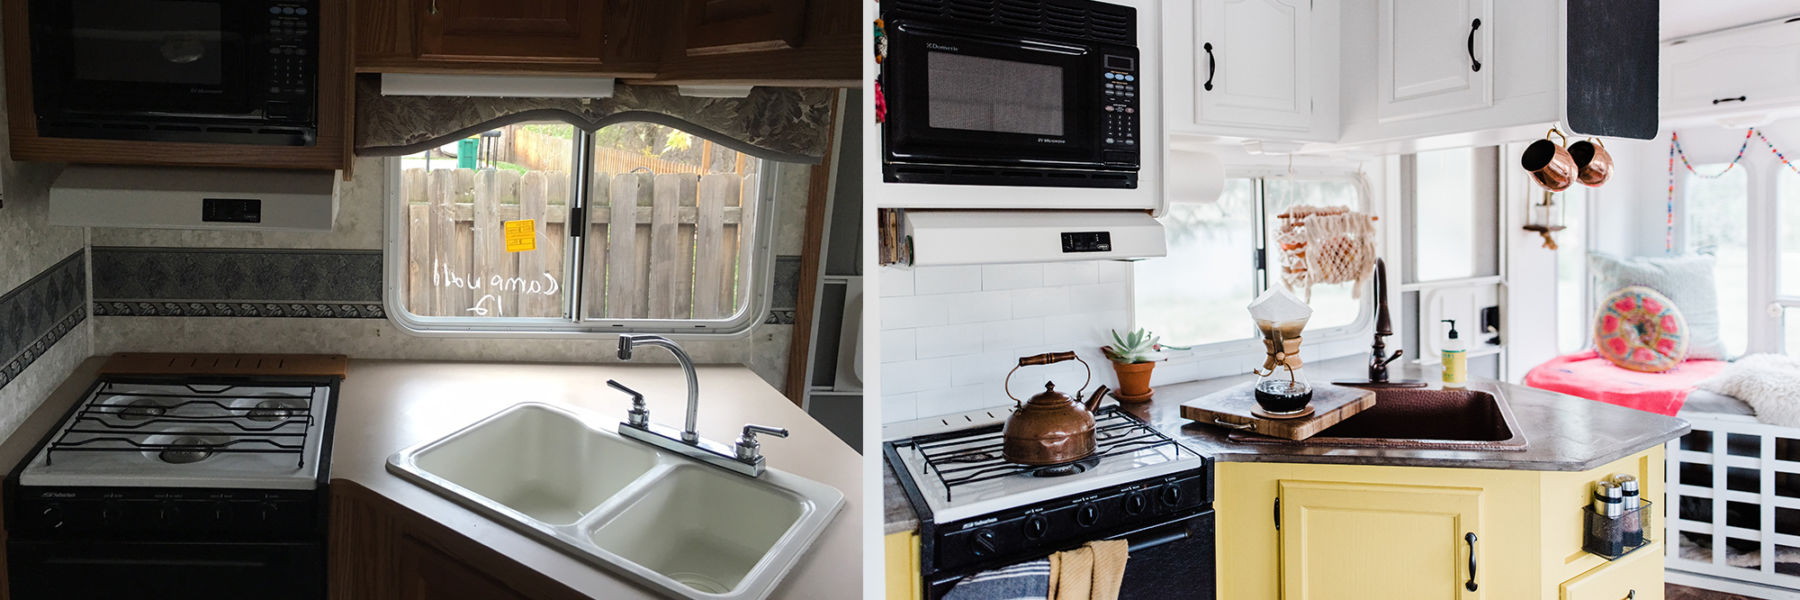 tiny-camper-kitchen-before-after